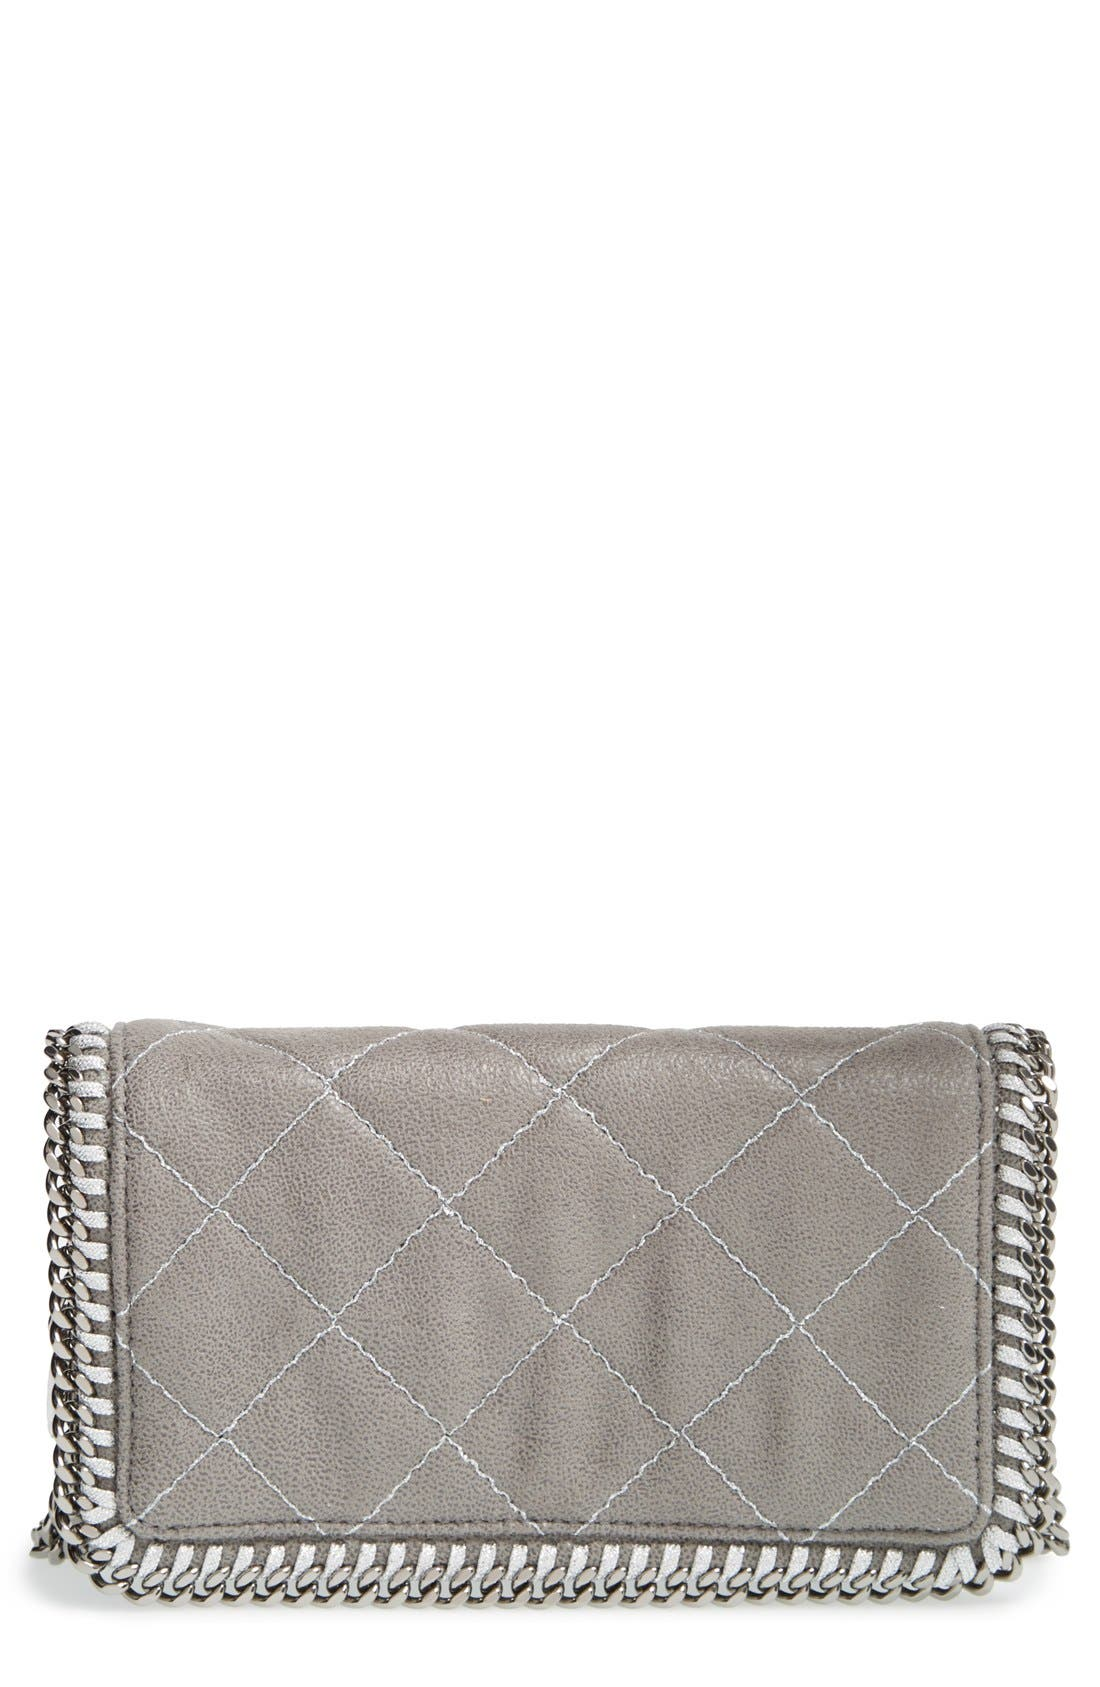 'Falabella' Quilted Faux Leather Crossbody Bag,                             Main thumbnail 3, color,